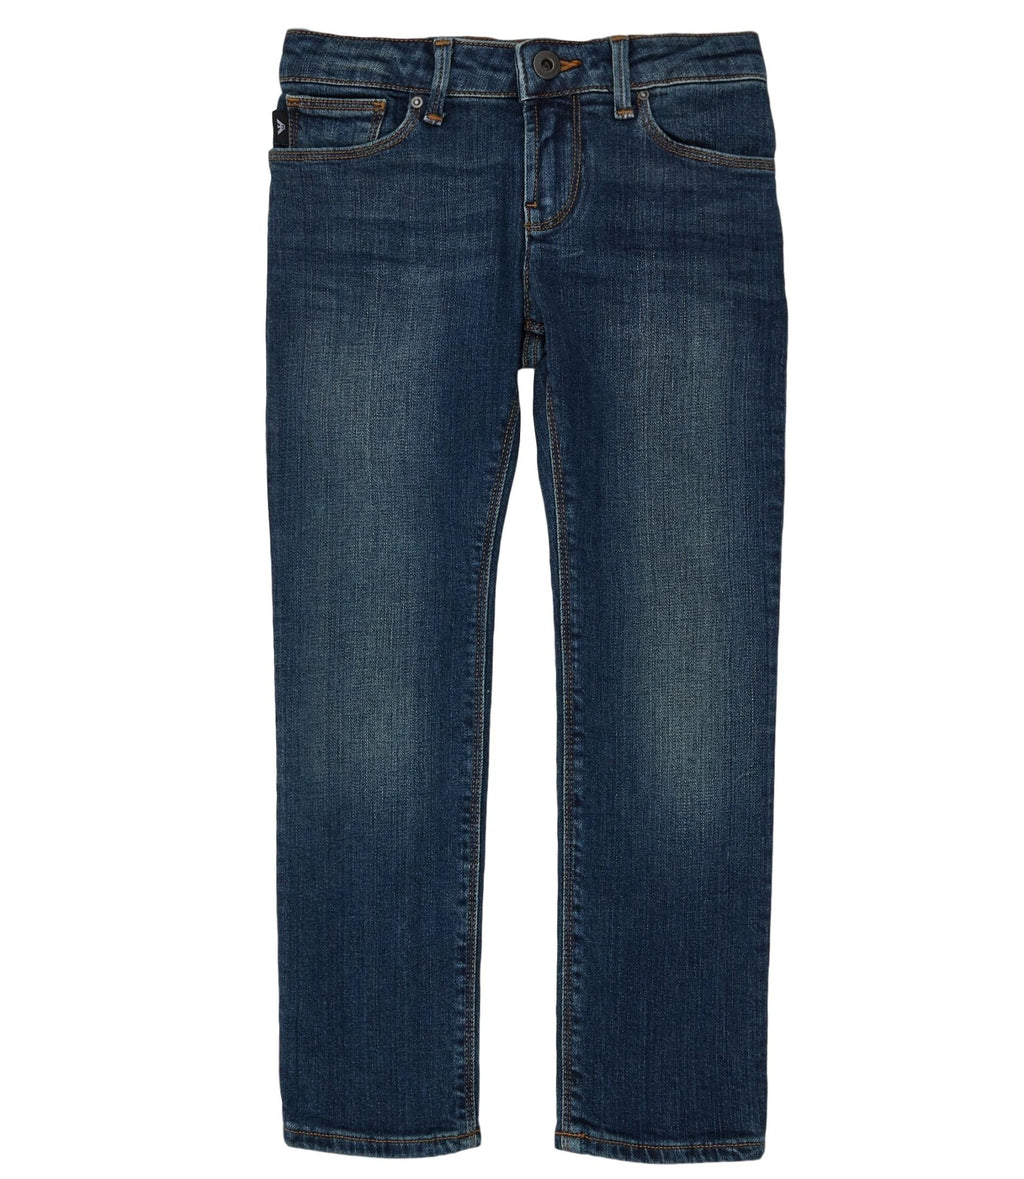 Armani Junior 5 Pocket Jean Pant